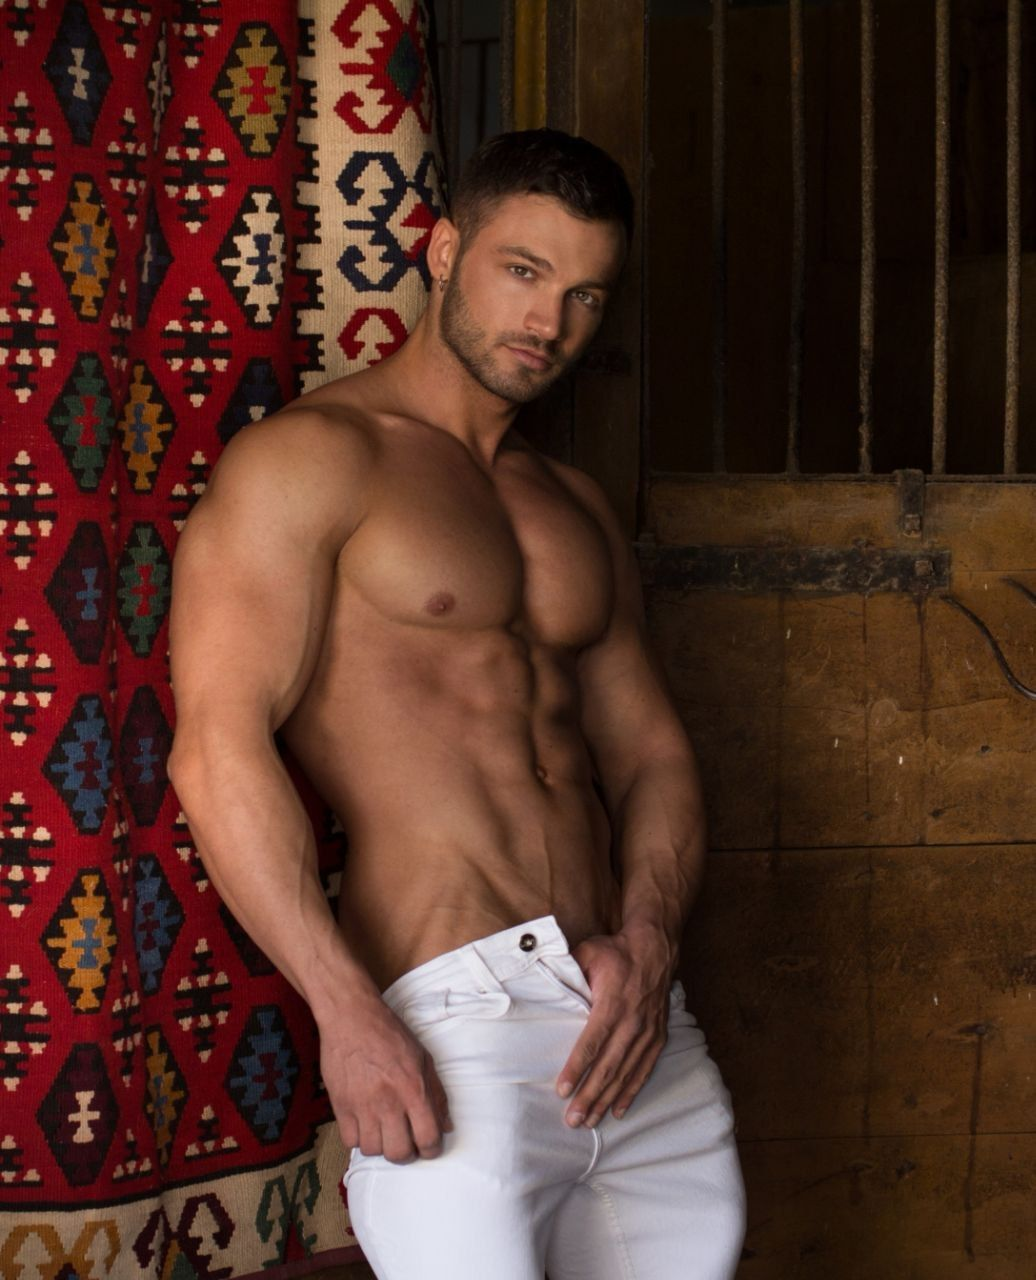 Free Nick_milan onlyfans onlyfans leaked